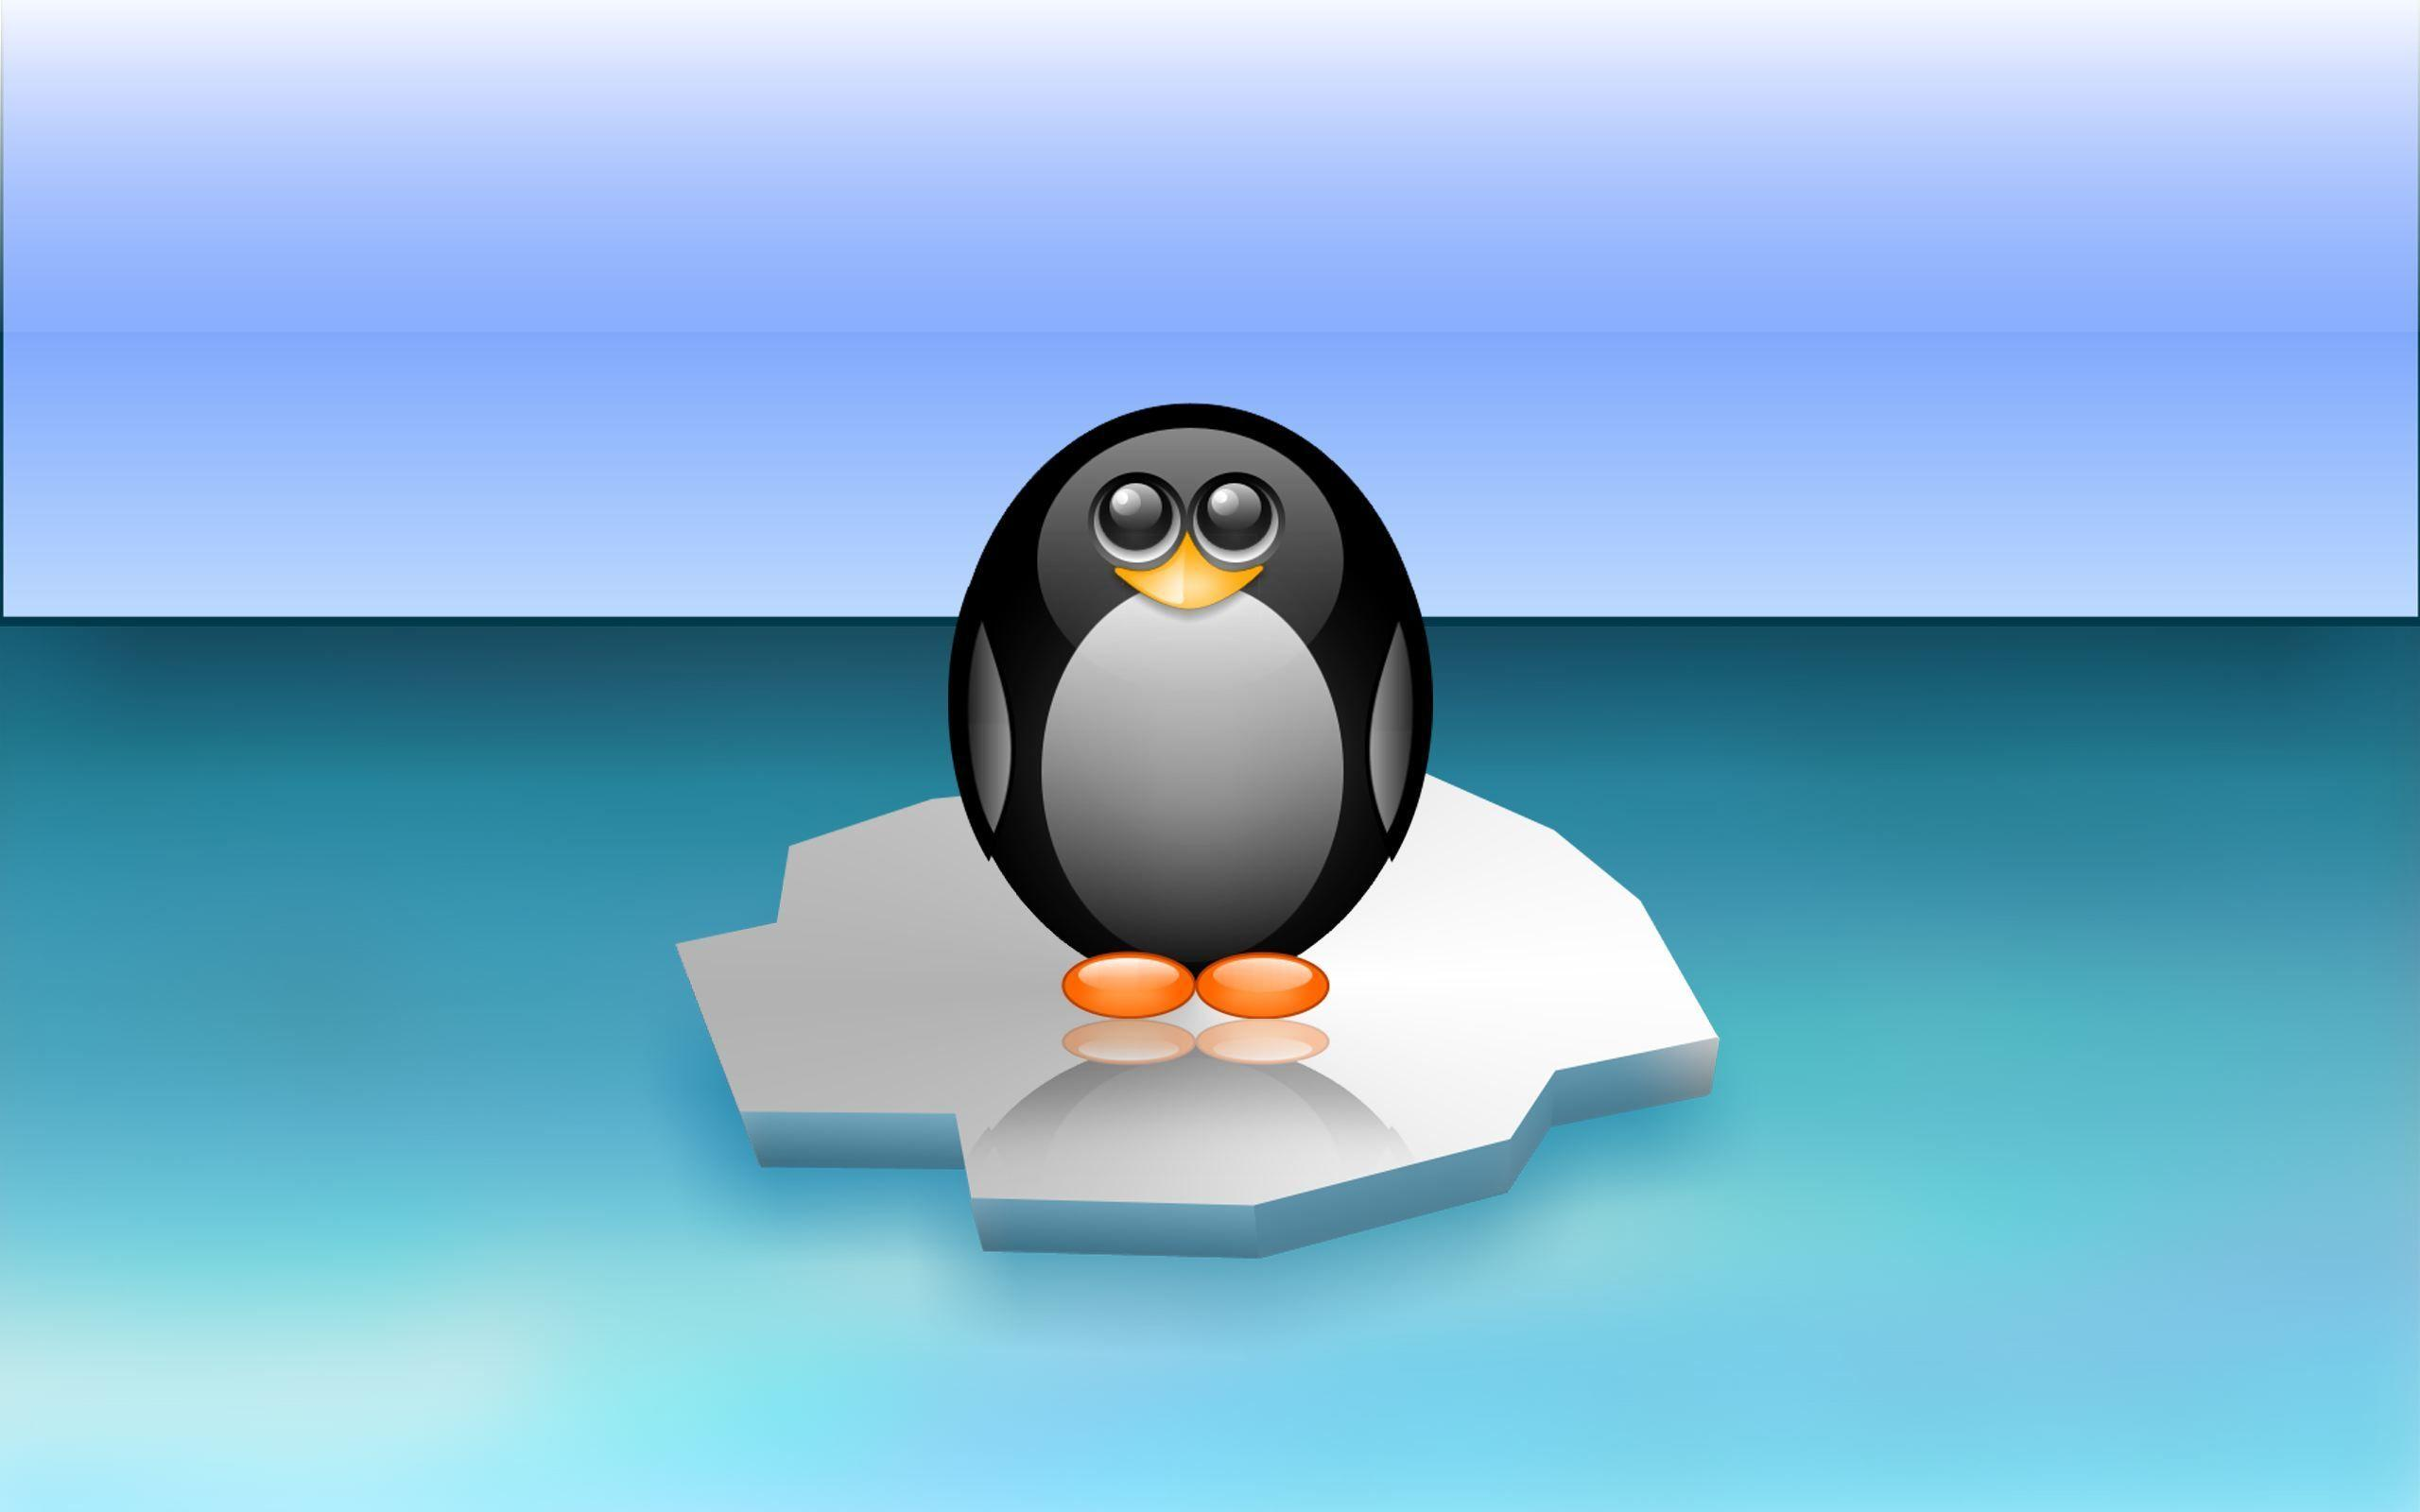 Animated Penguin Wallpapers - Wallpaper Cave